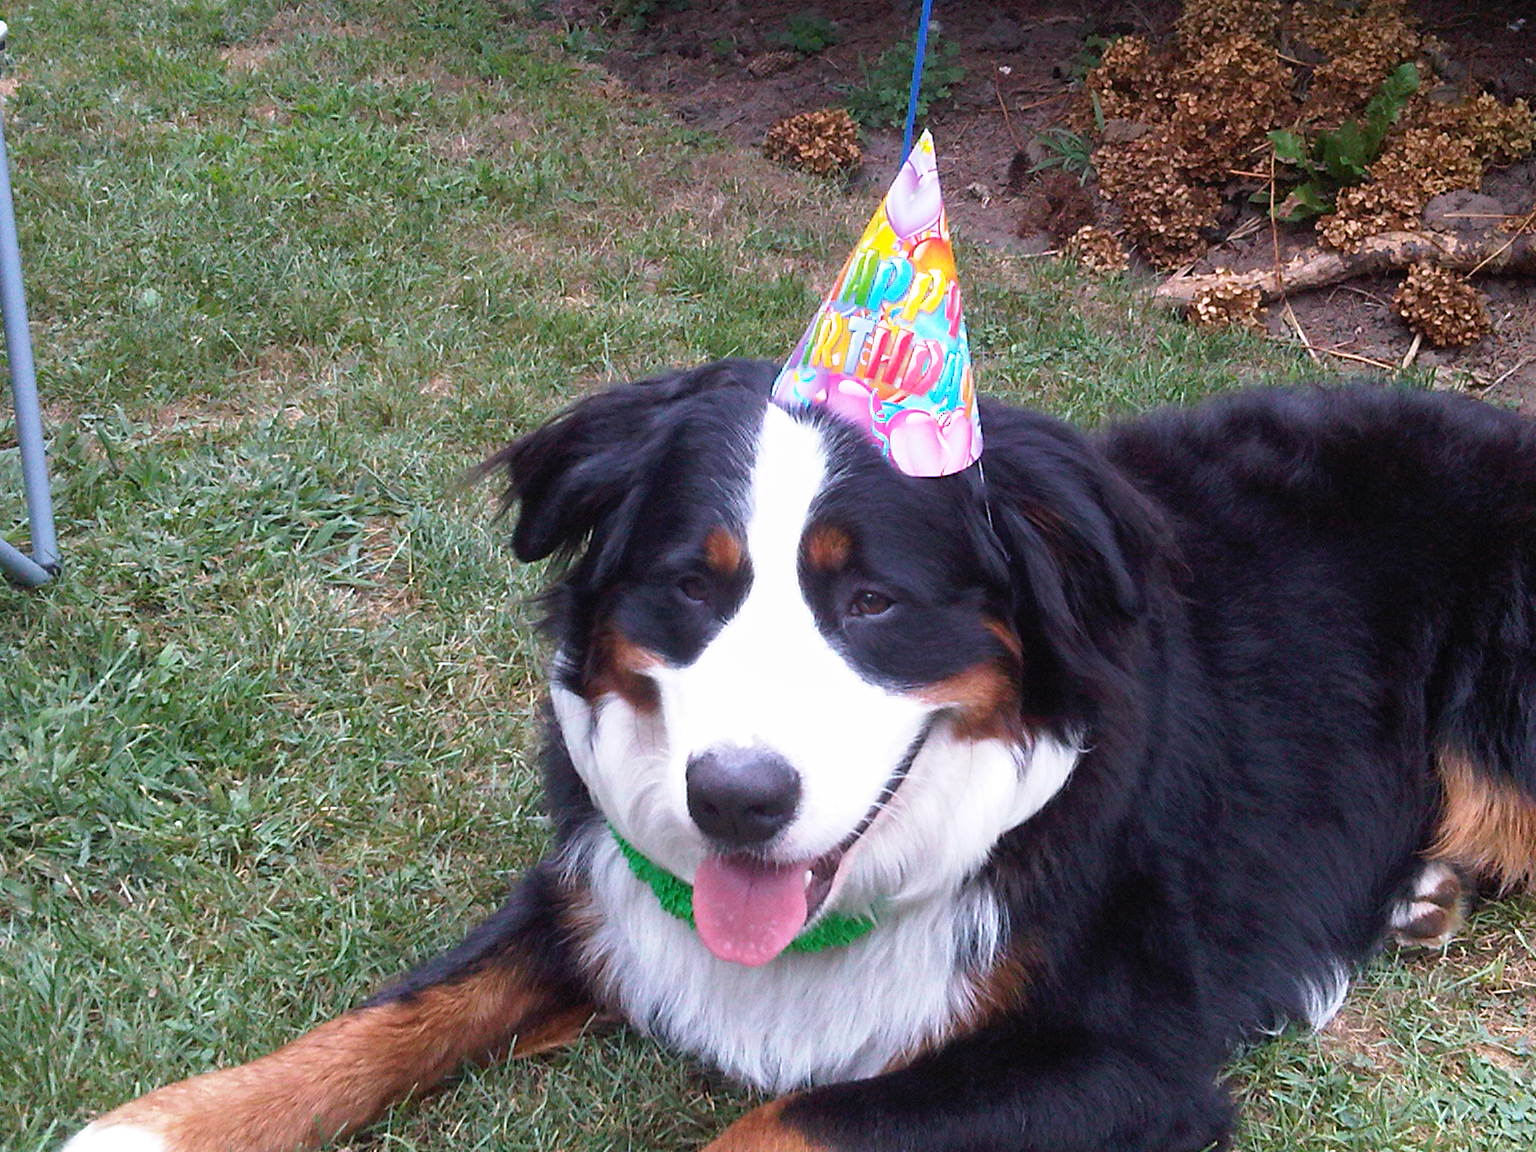 They Made Me Wear This Stupid Birthday Hat